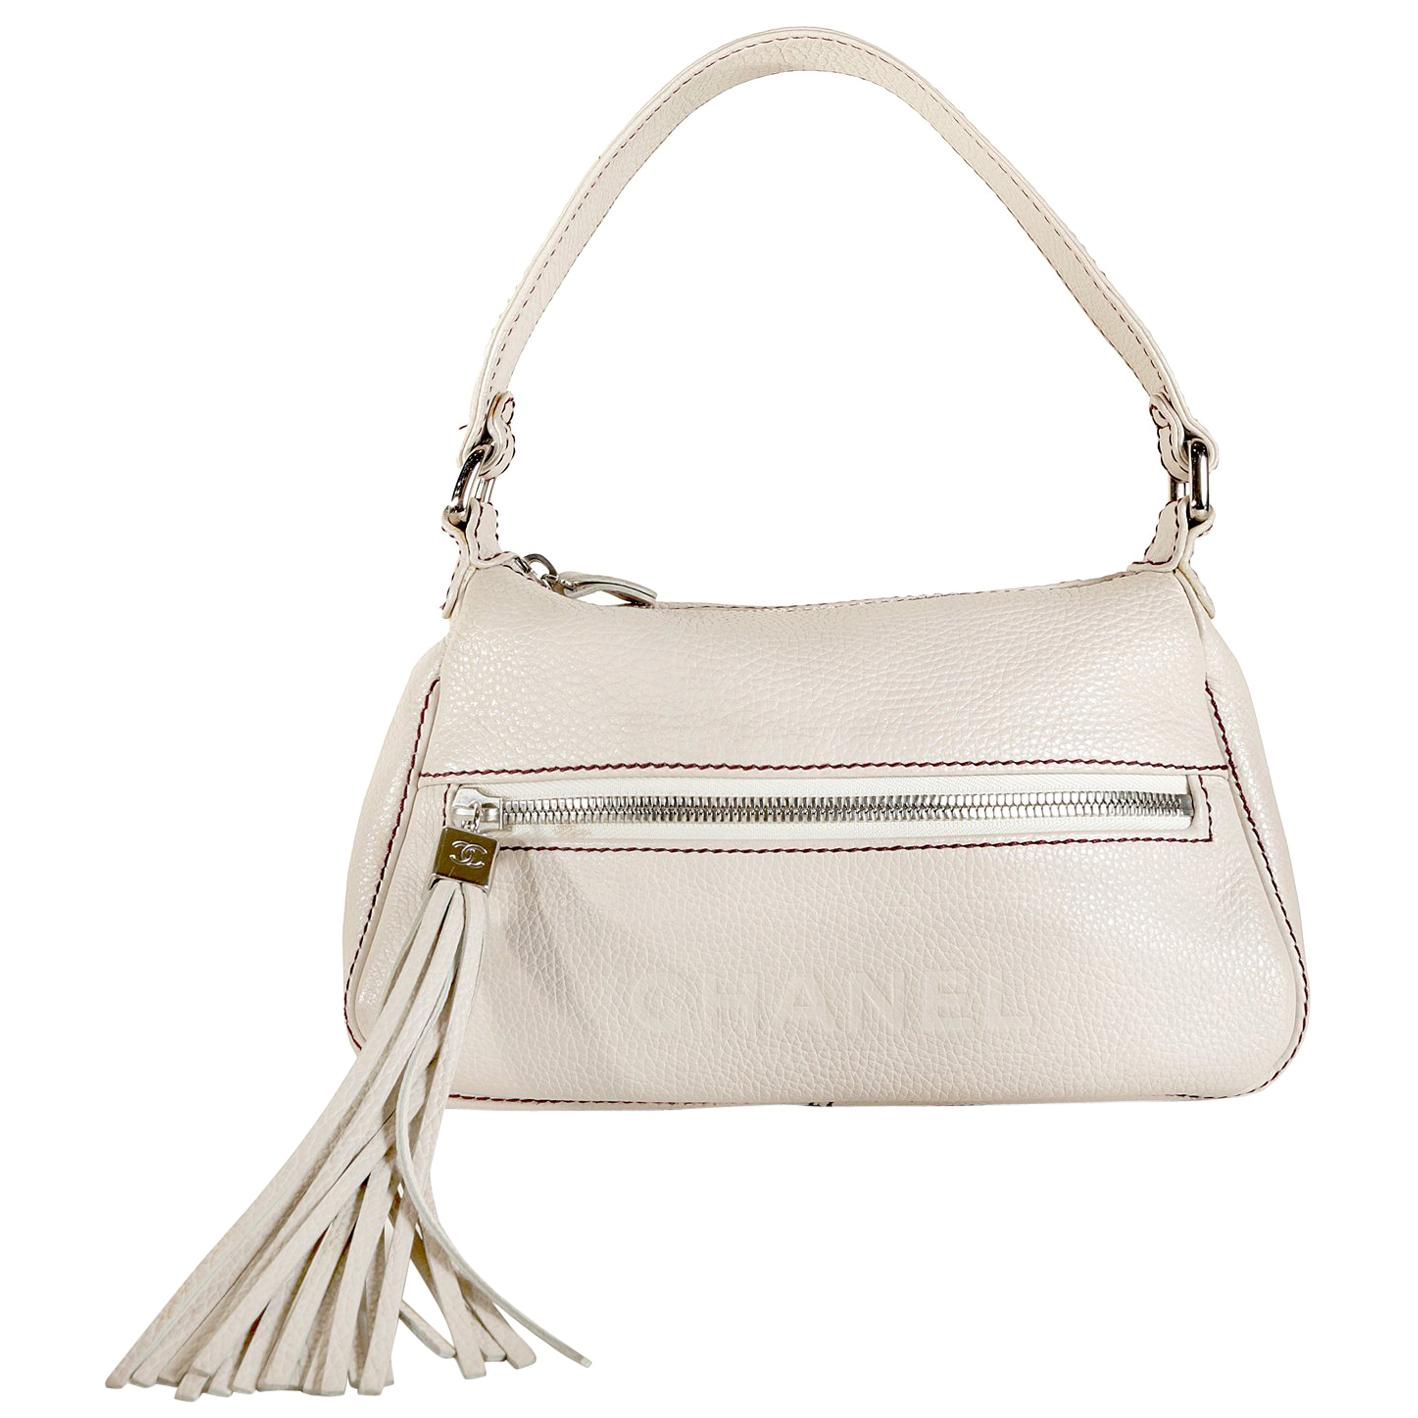 b5d33b2adc6f7d Only Authentics Handbags and Purses - 1stdibs